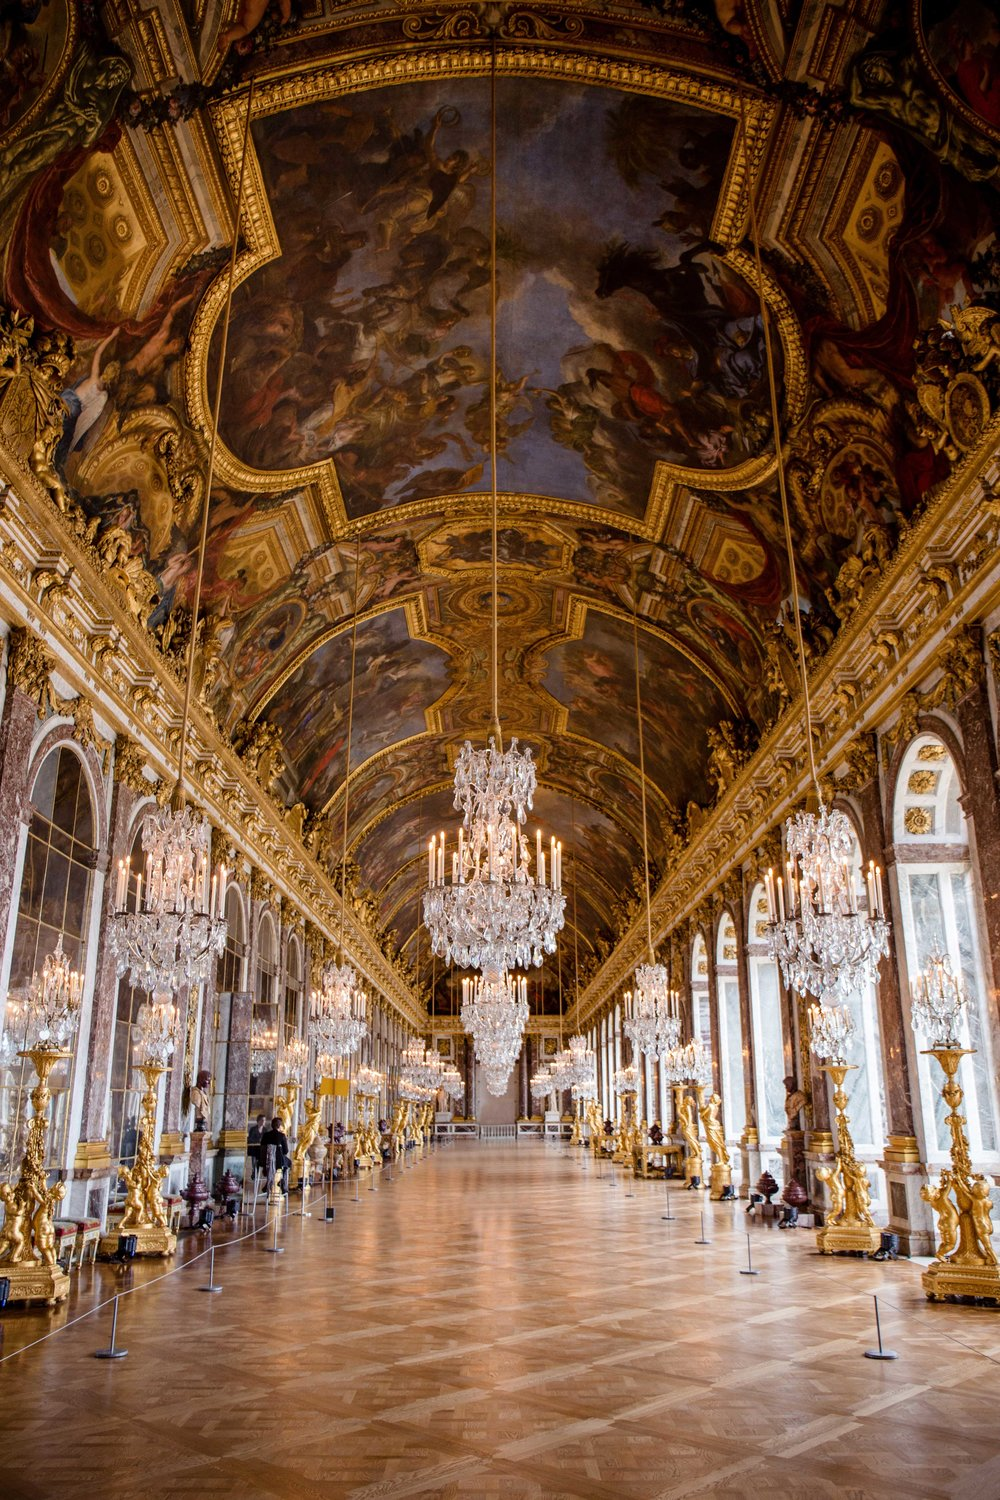 We were the fifth people in line to enter Versailles and so I was able to capture this stunning picture of the Hall of Mirrors.  When I was last in Paris 10 years ago, they were doing reconstruction work in this room and everything was covered up--so it was exciting to spend some quiet time alone in the room before the crowds of people arrived.